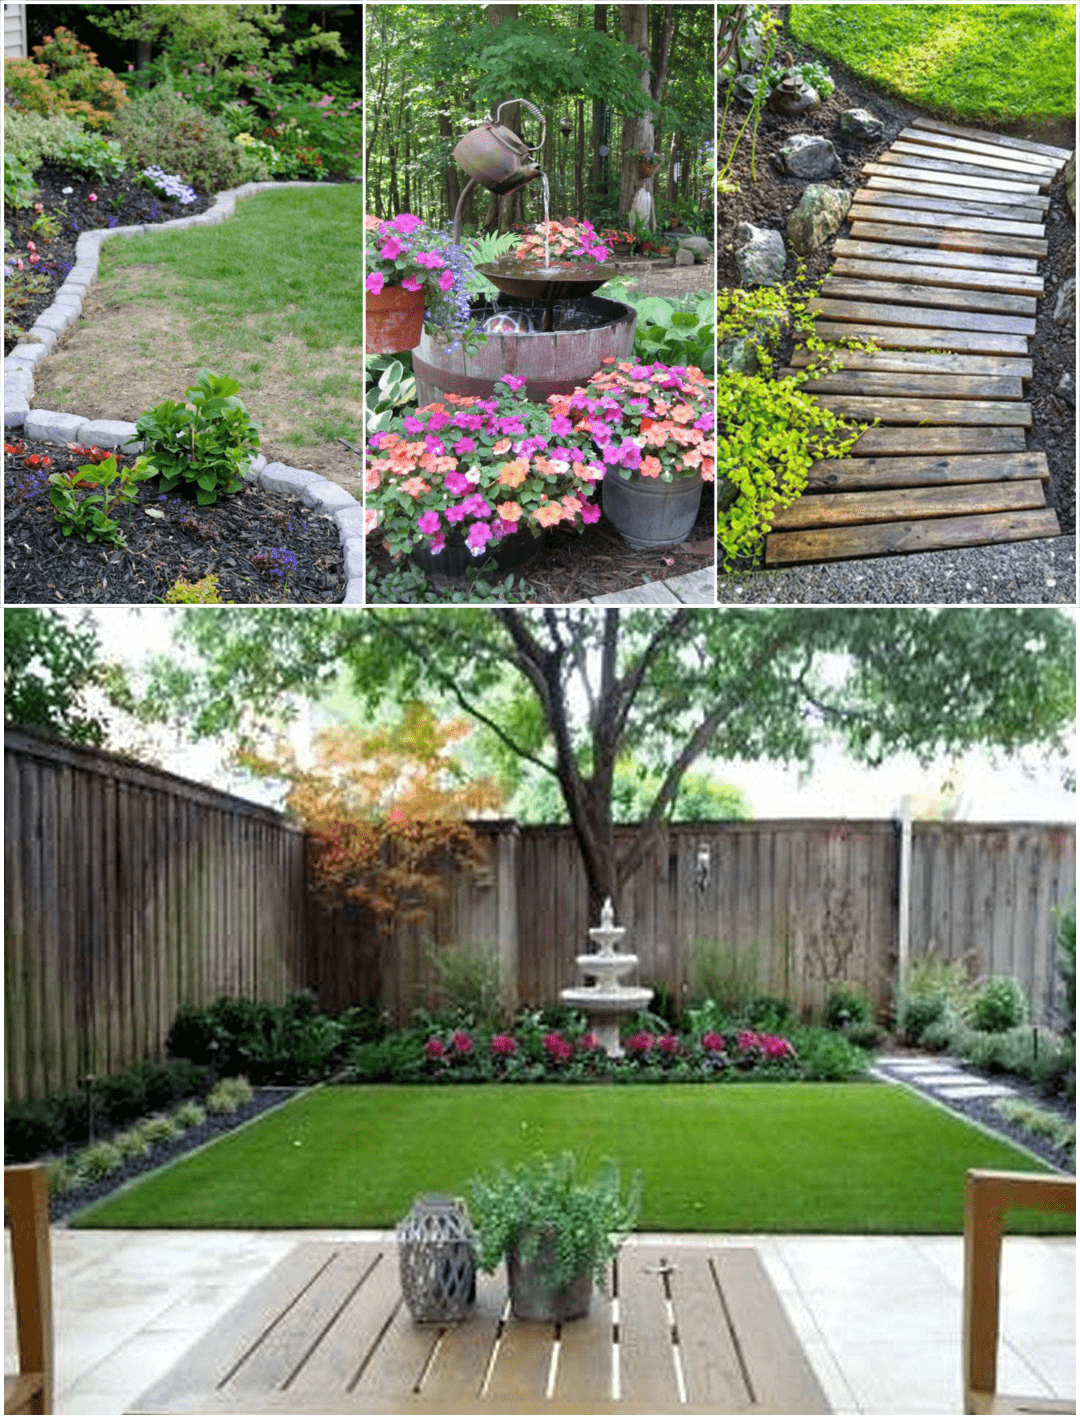 Simphome.com A beautiful backyard landscape design for outdoor patio decorating